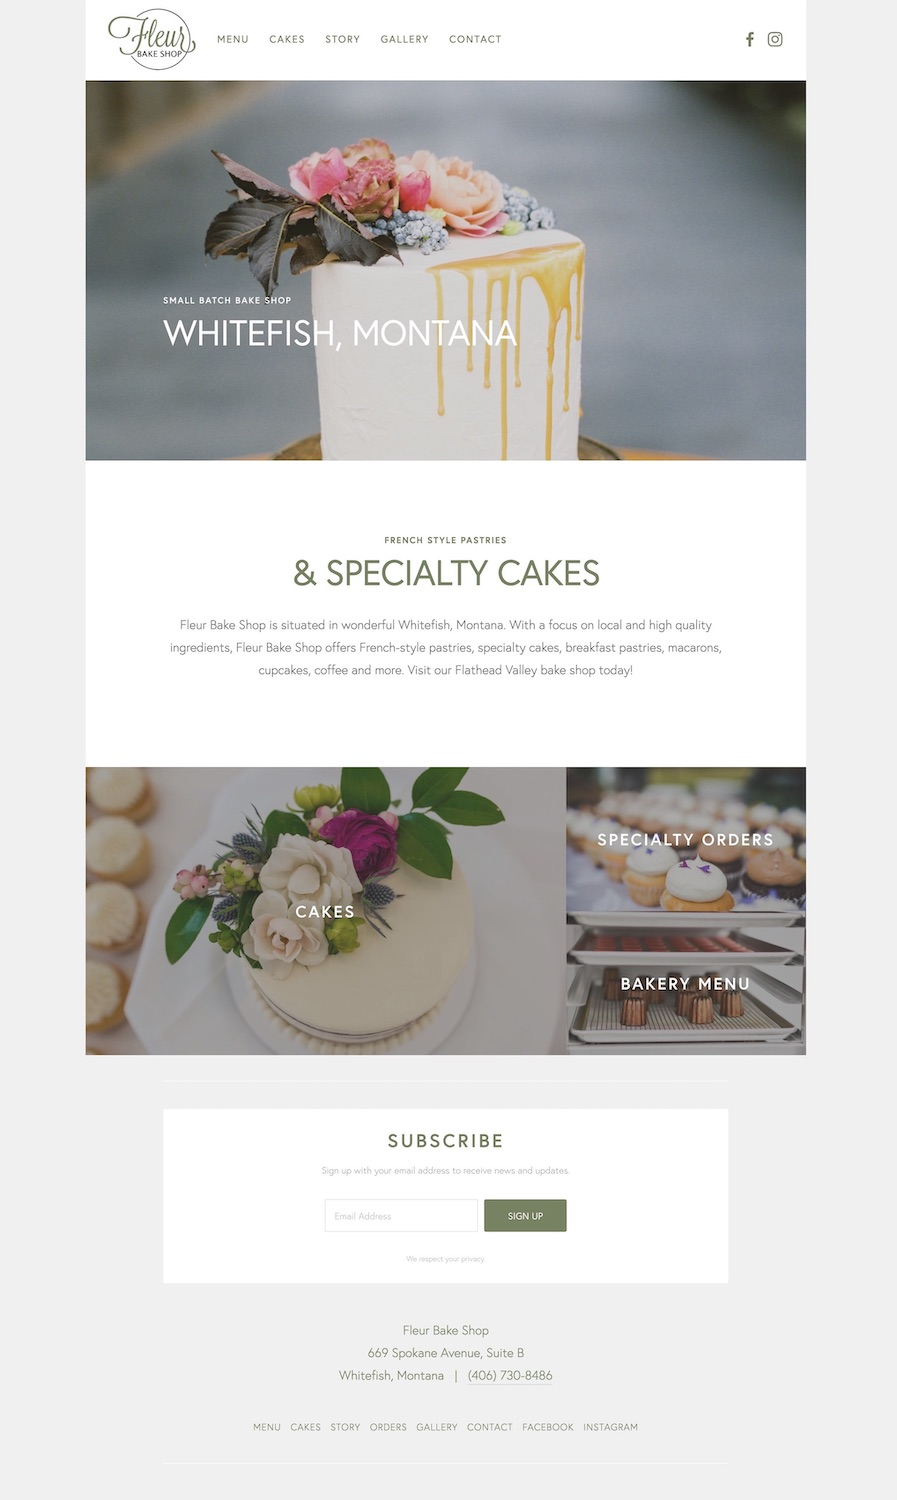 Small Batch BakeryWebsite Design - Location: Whitefish, MontanaWebsite design for a small batch bake shop in Whitefish, Montana. This mobile-friendly website features a responsive layout with bakery menu, contact form and a Mailchimp integration.tags: whitefish web design, minimal web design, modern web design, craft web development, bakery website design, mobile-friendly web design, ssl certificate, mailchimp, website training, squarespace training, authorized squarespace trainer